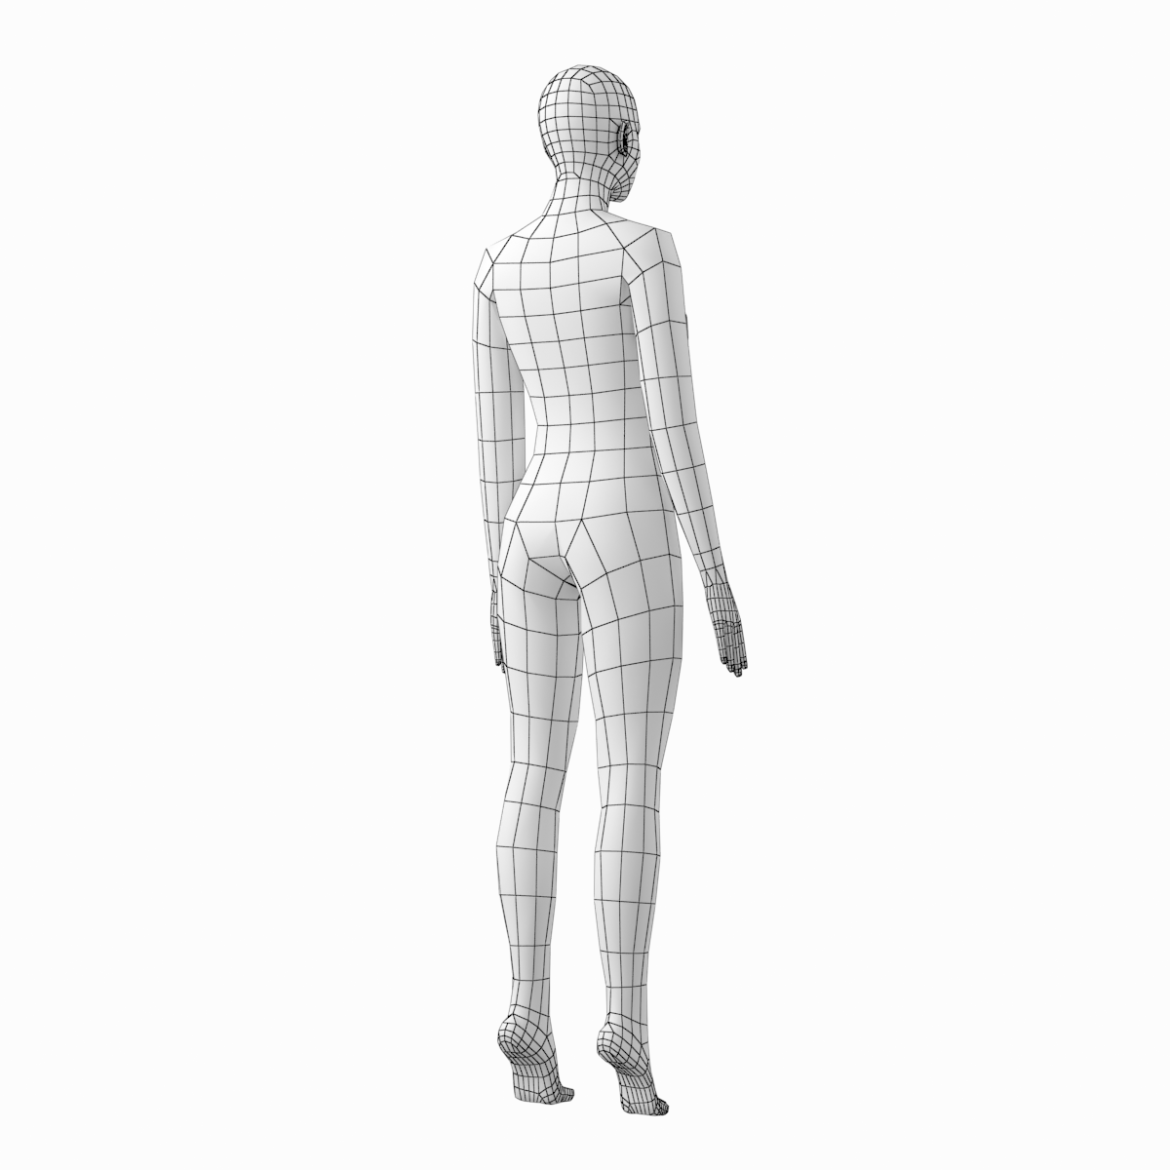 female and male base mesh in rest pose 3d model png c4d dae dwg dxf fbx max ma mb obj stl txt 305808